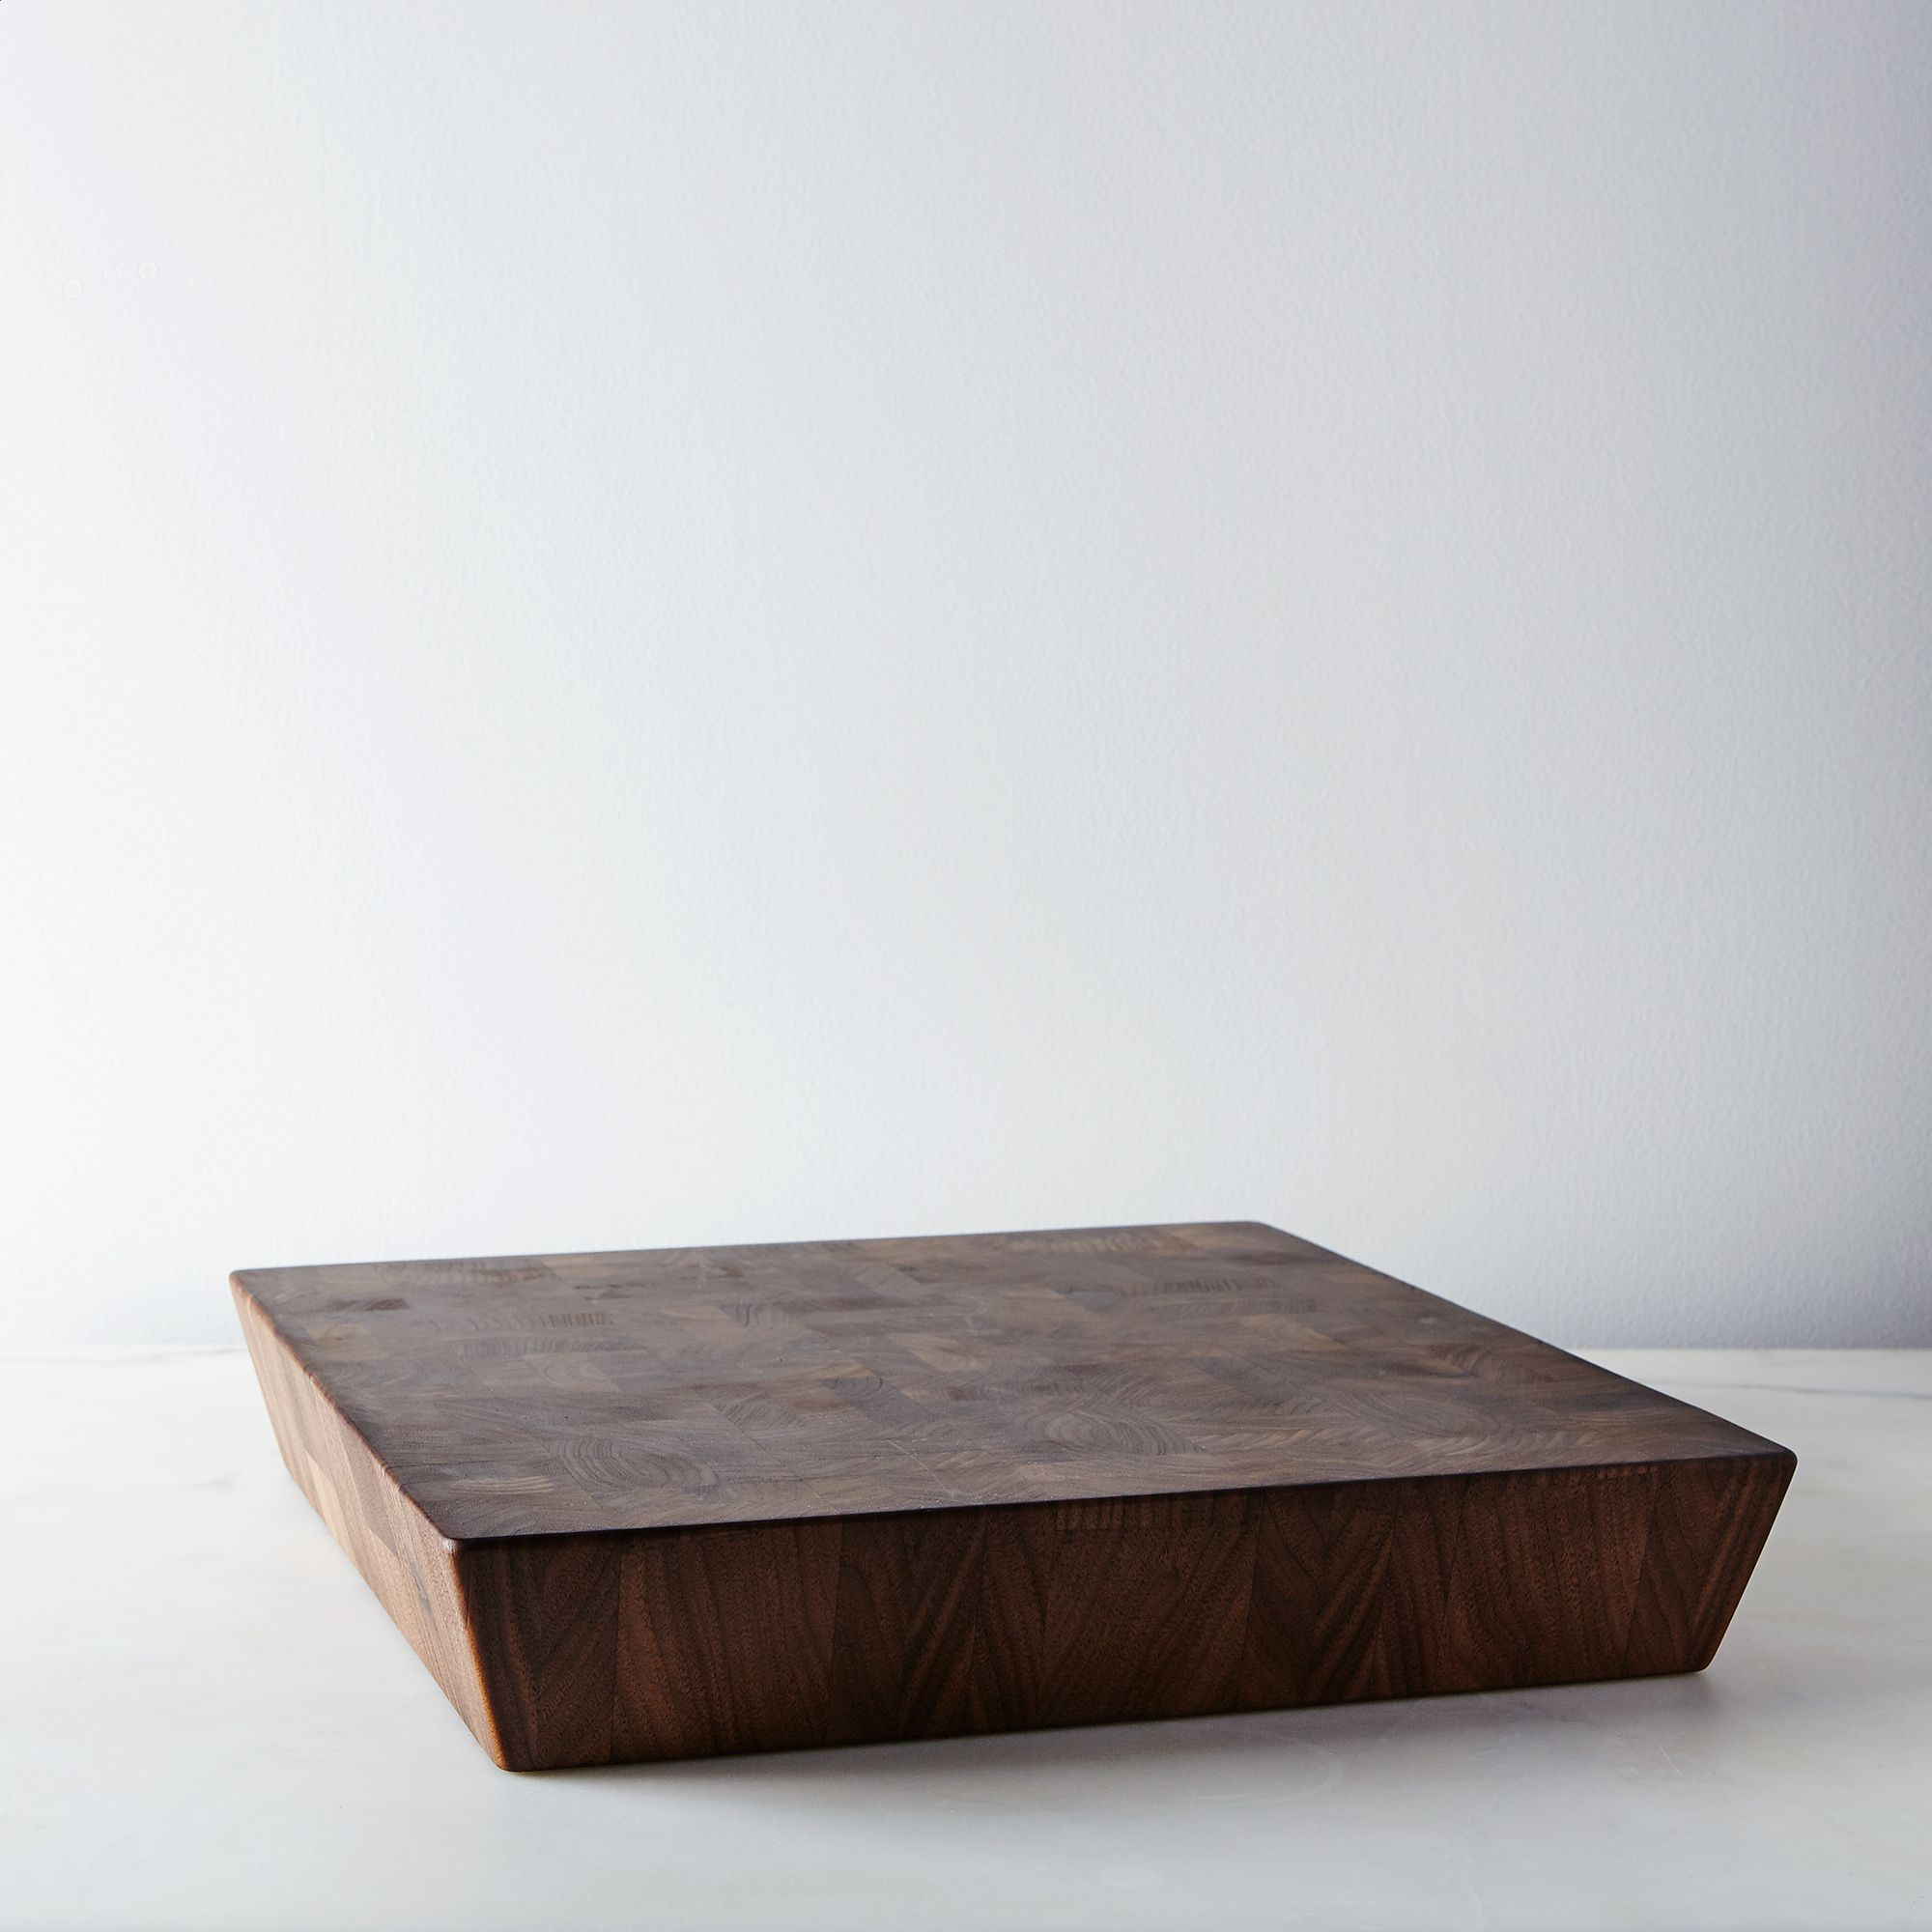 Walnut End Grain Chopping Board 14 Wooden Block Cutting Boards Knives Garde The Palate Food52 On